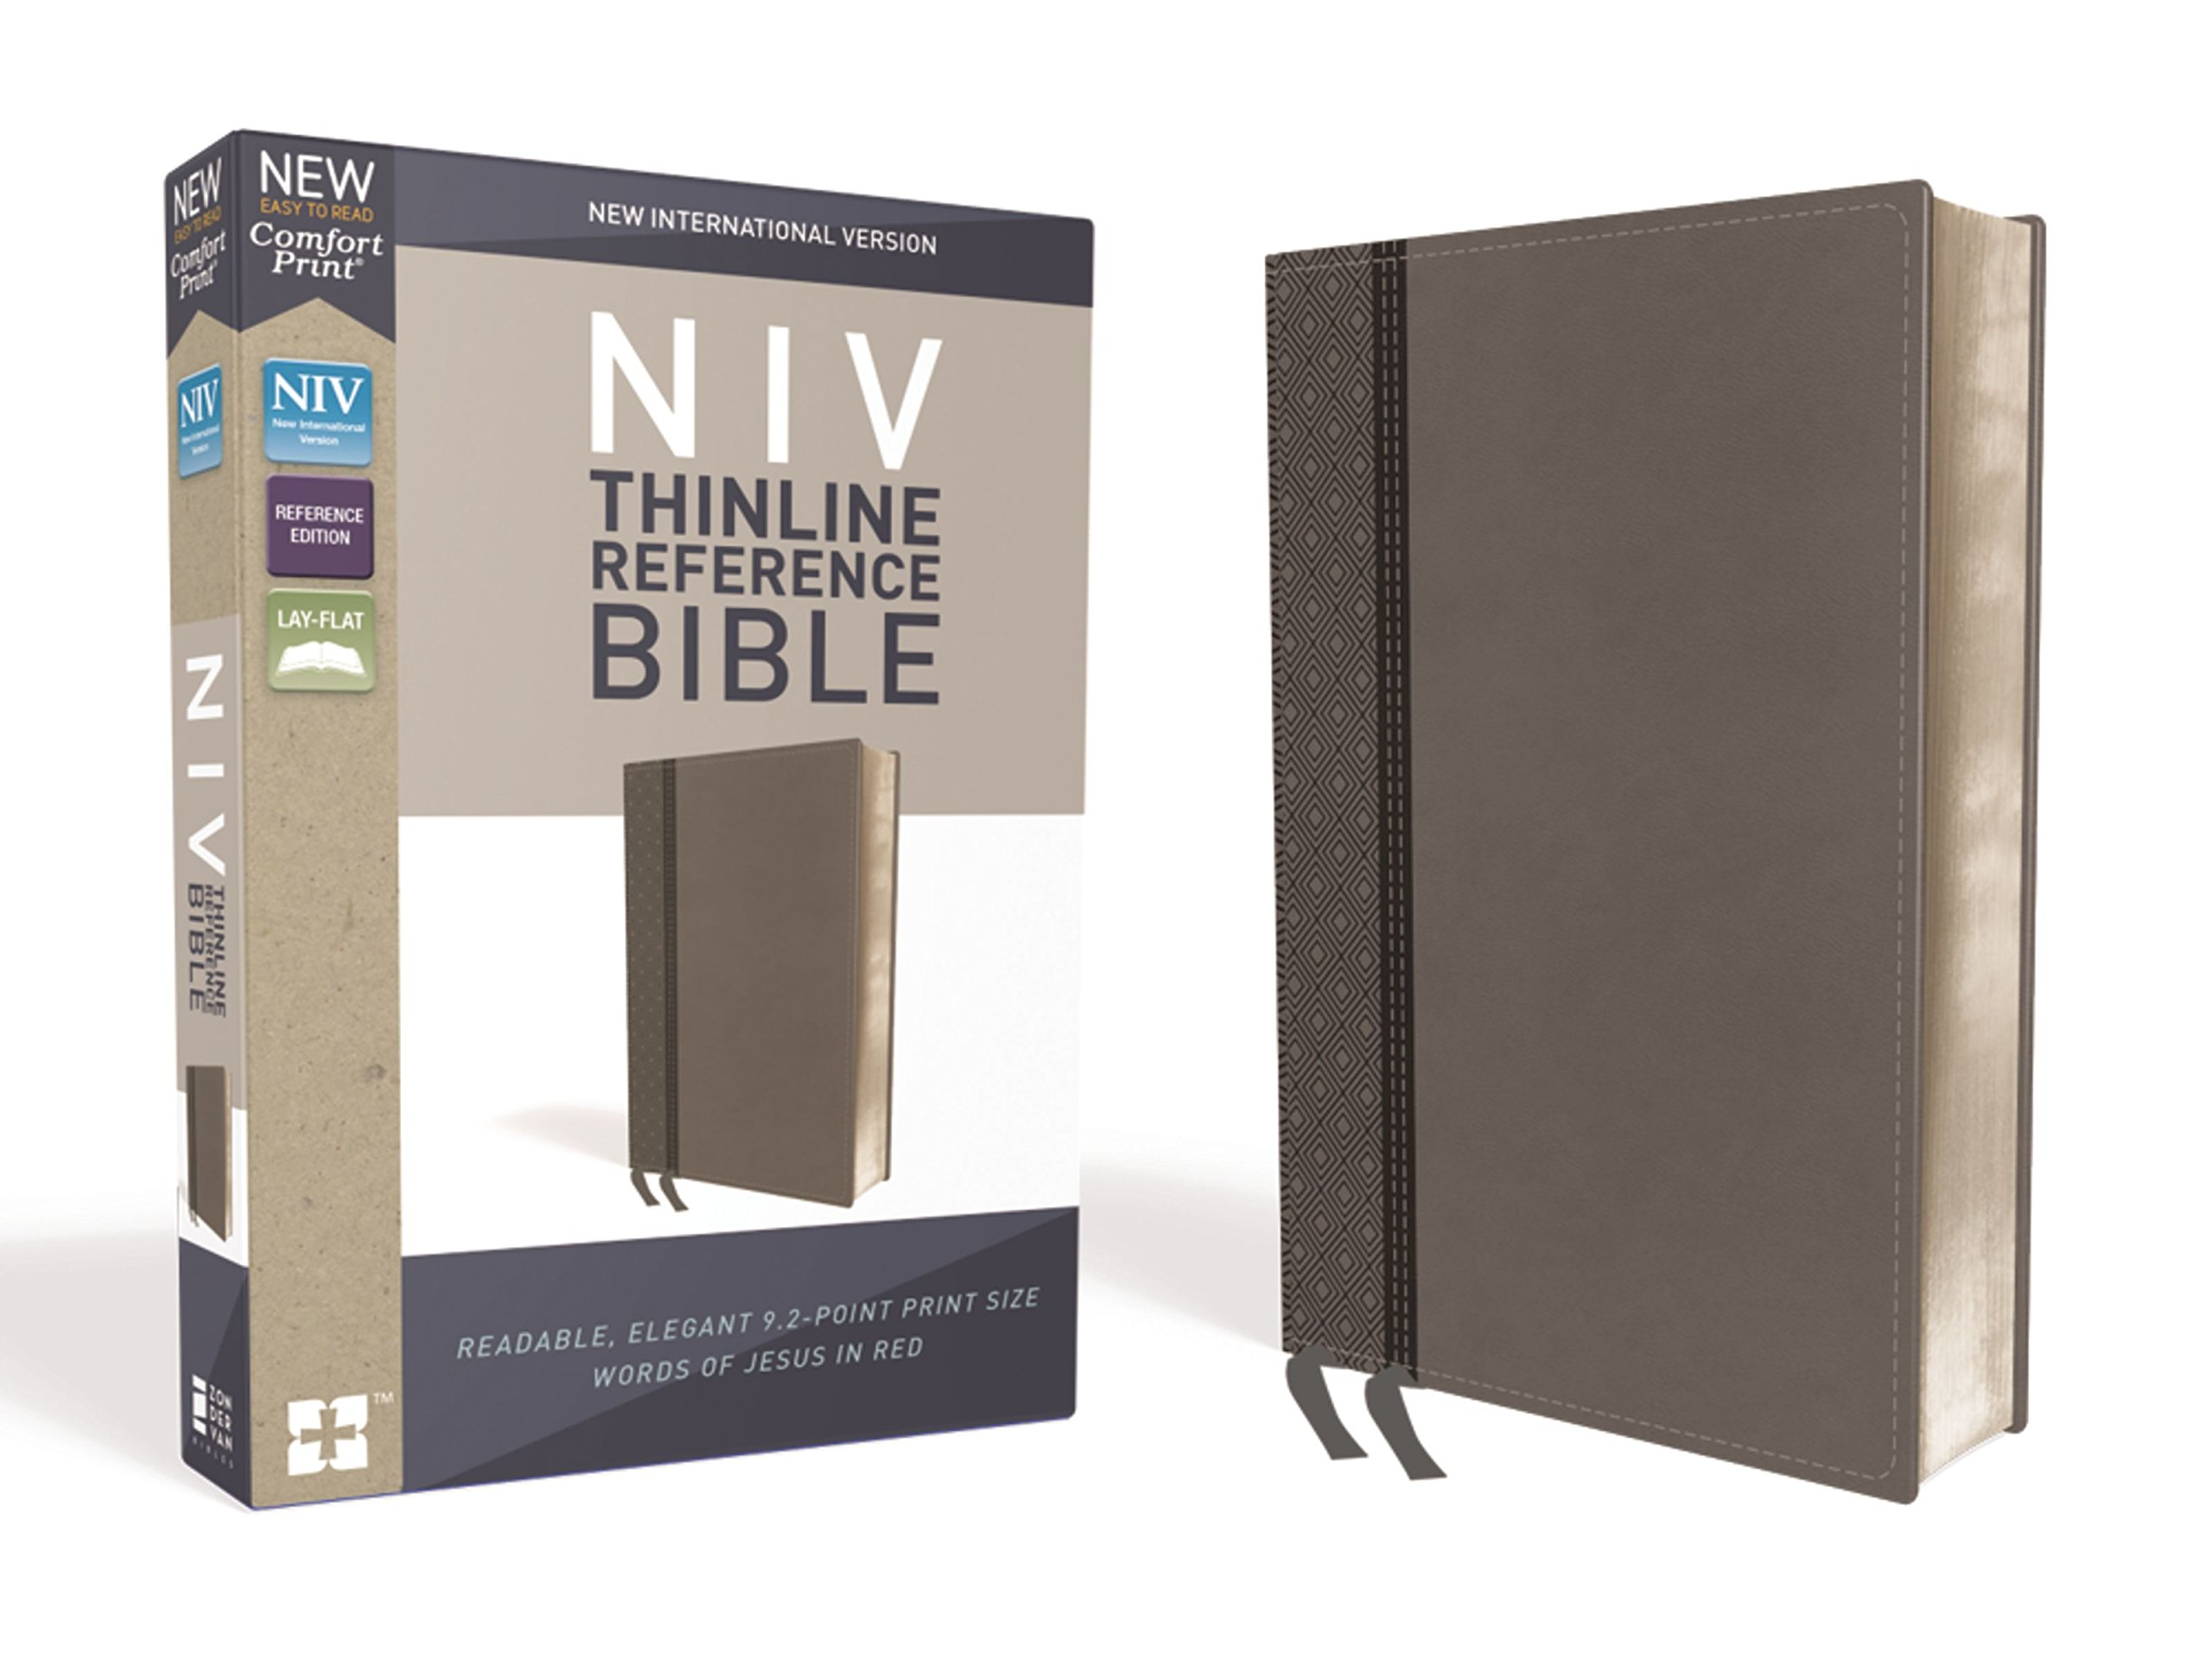 NIV, Thinline Reference Bible, Leathersoft, Gray, Red Letter Edition,  Comfort Print: Zondervan: 0025986449698: Amazon.com: Books